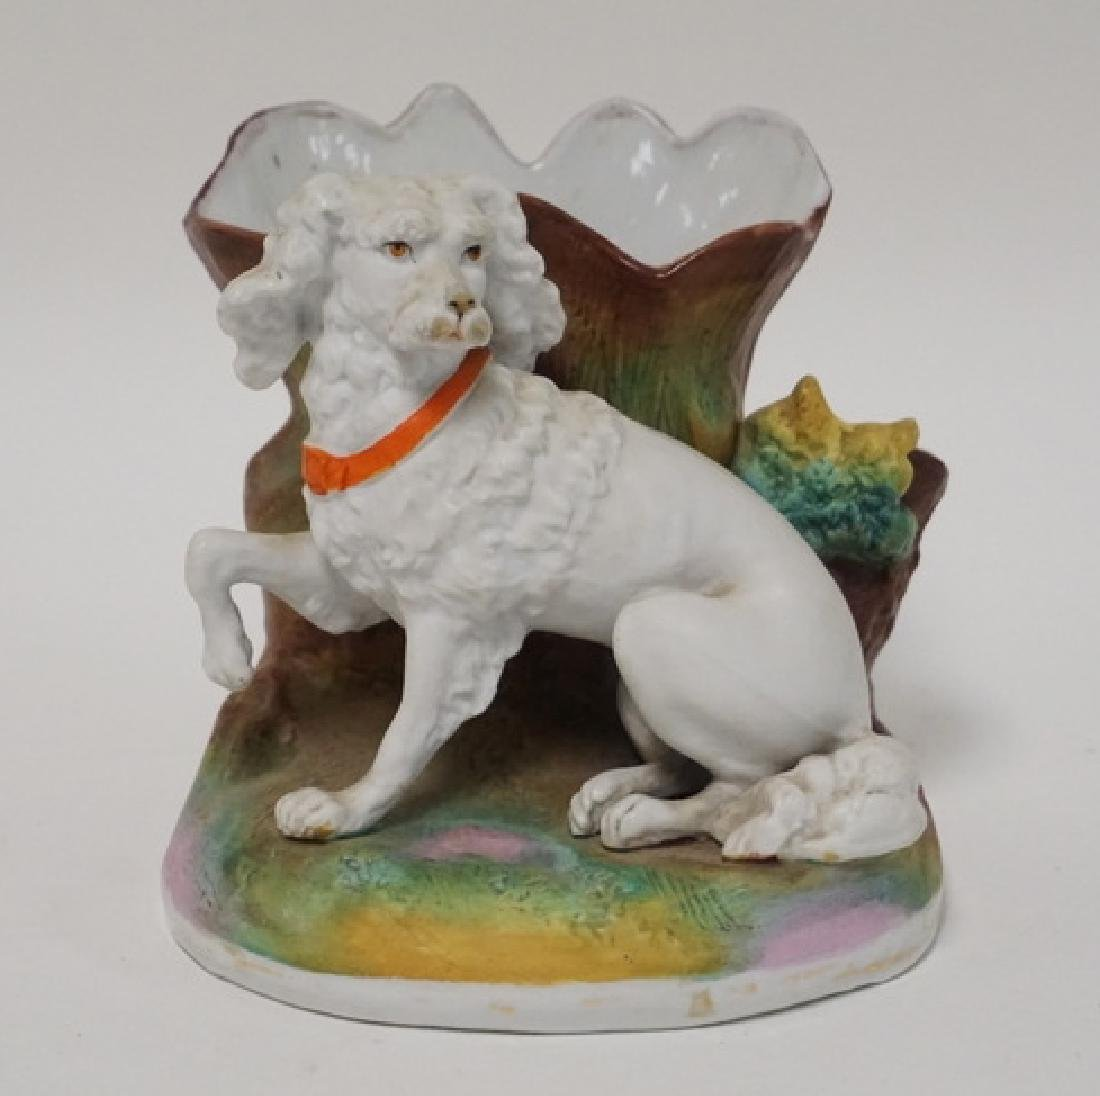 HAND PAINTED BISQUE SMOKING STAND W/DOG. PROBABLY